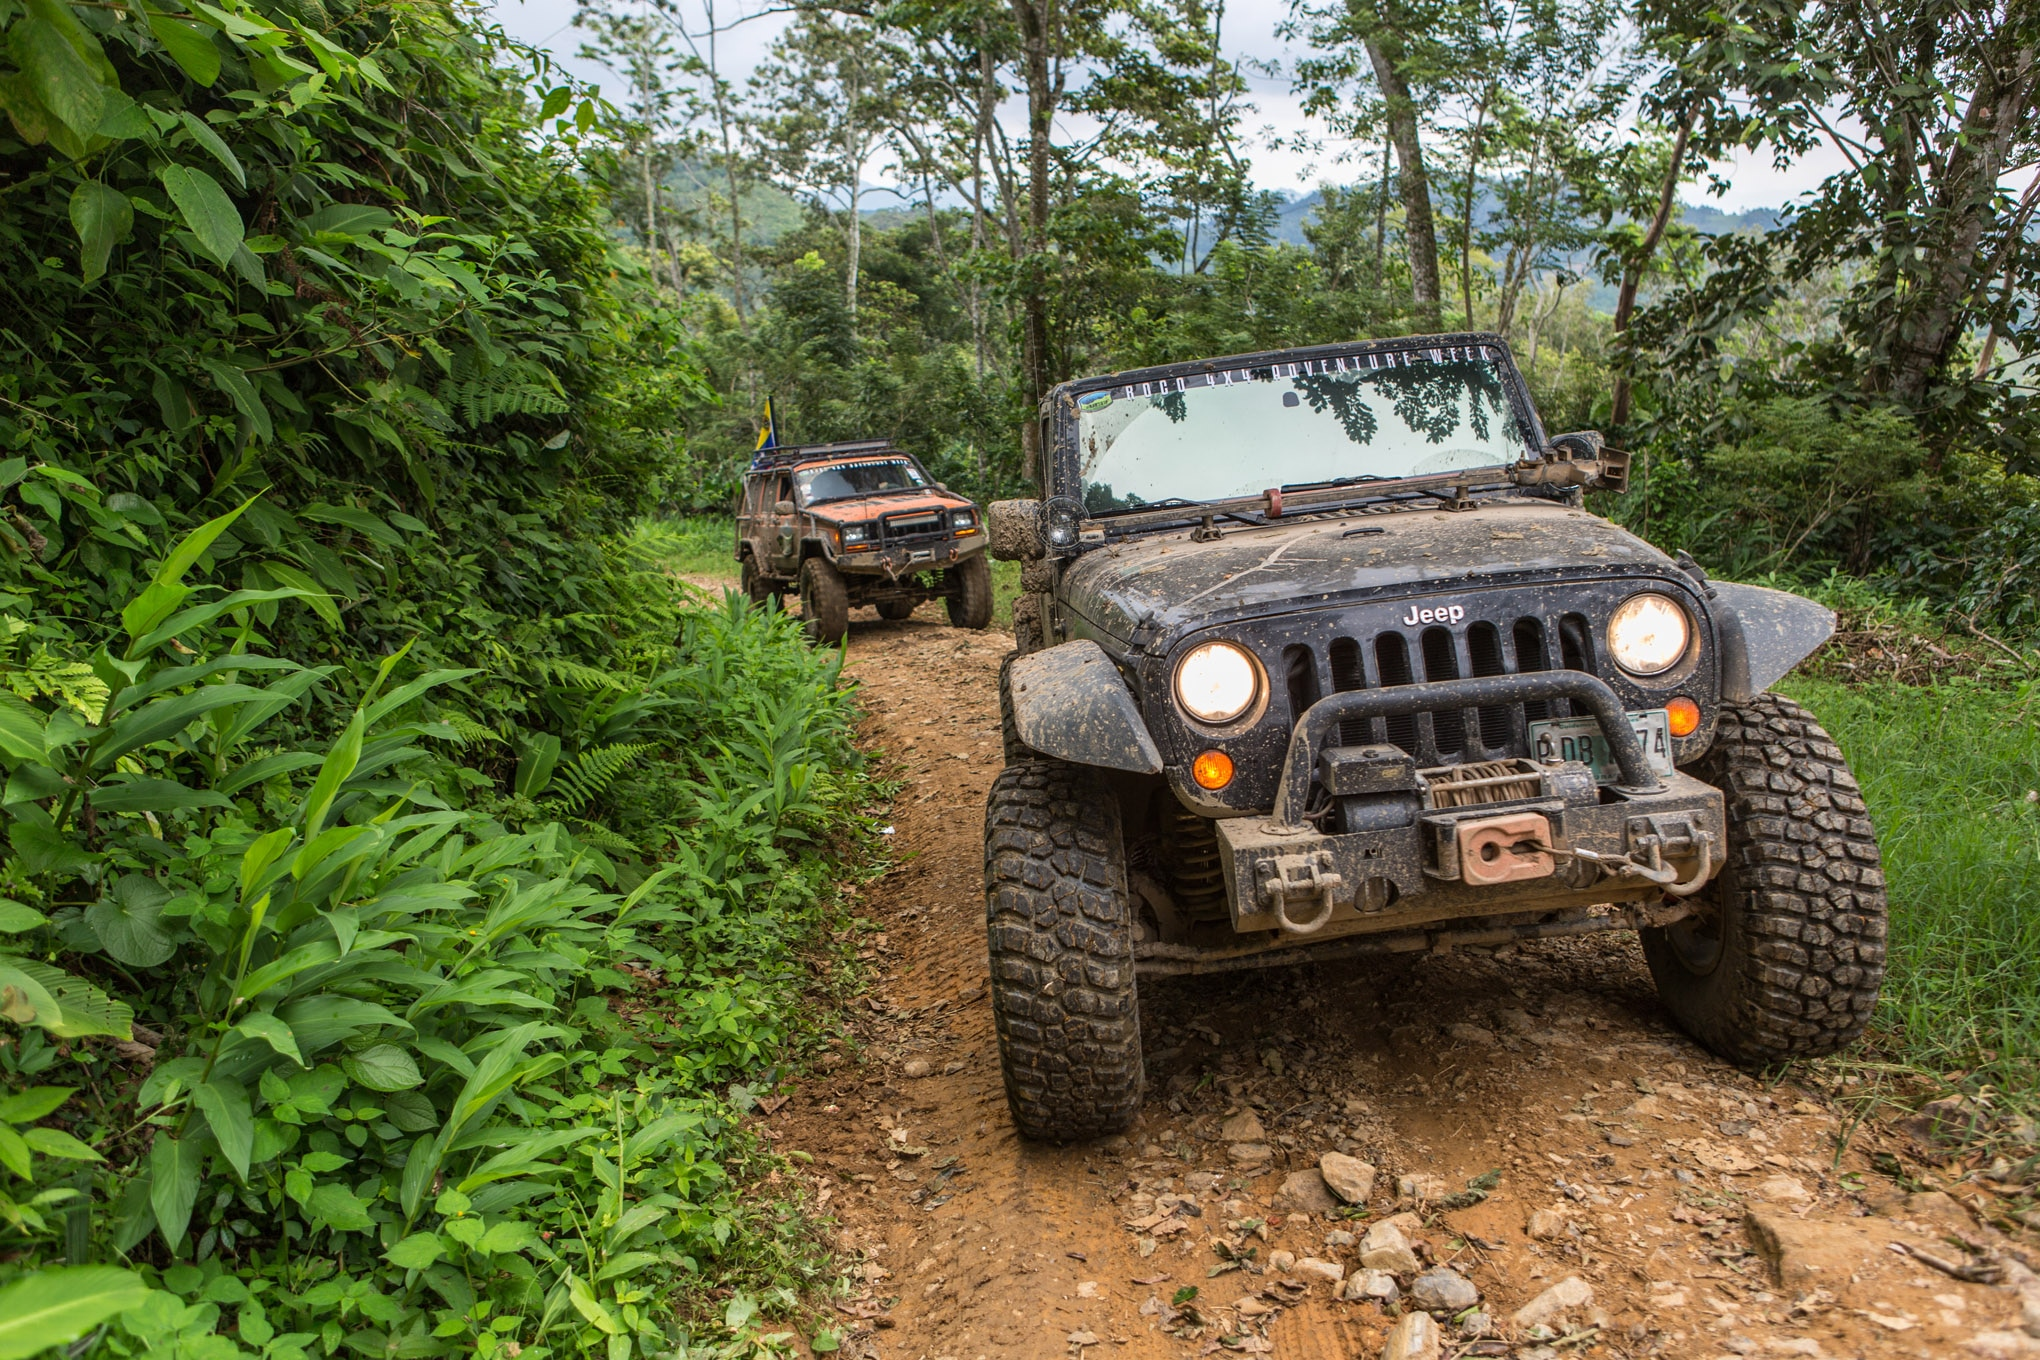 It comes in handy to have a doctor along on any off-road trip, but particularly one to the remote corners of Honduras. Abel Sandoval kept the entire group healthy and had a lot of fun doing it from behind the wheel of his two-door JK. The Jeep has a 3.5-inch BDS suspension that makes room for 35-inch BFGoodrich KM2 tires.